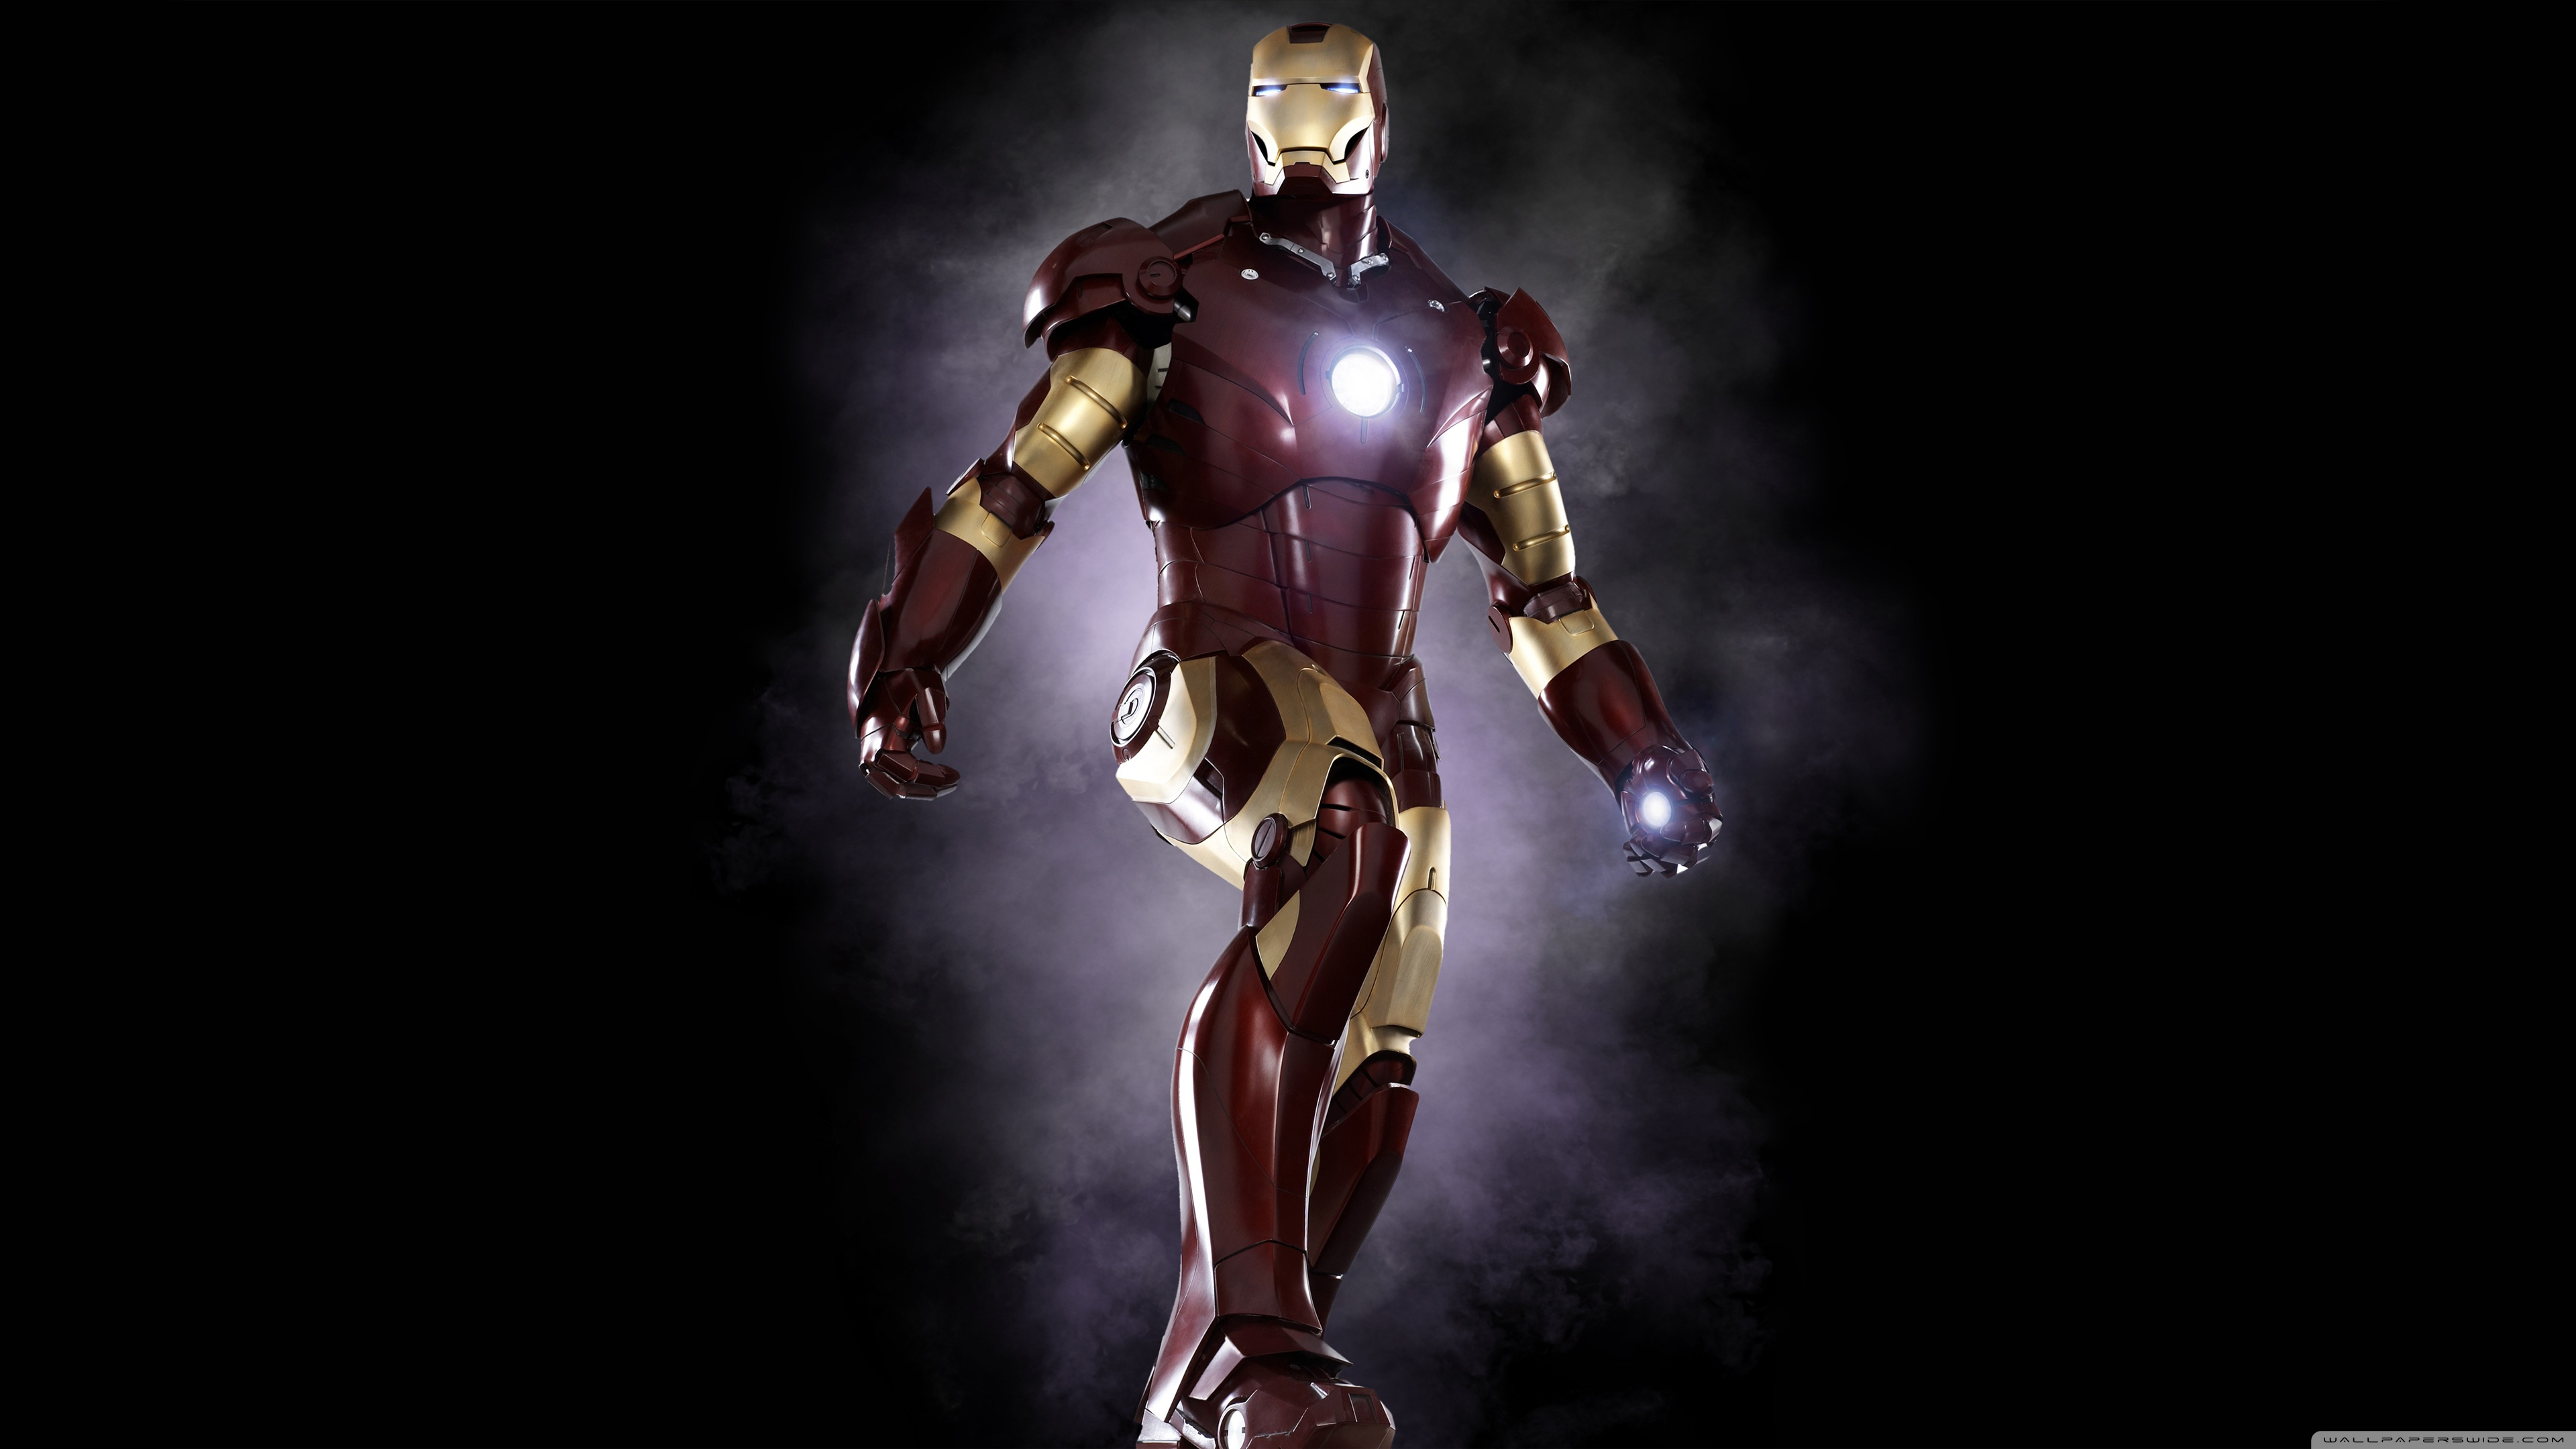 Iron man hd